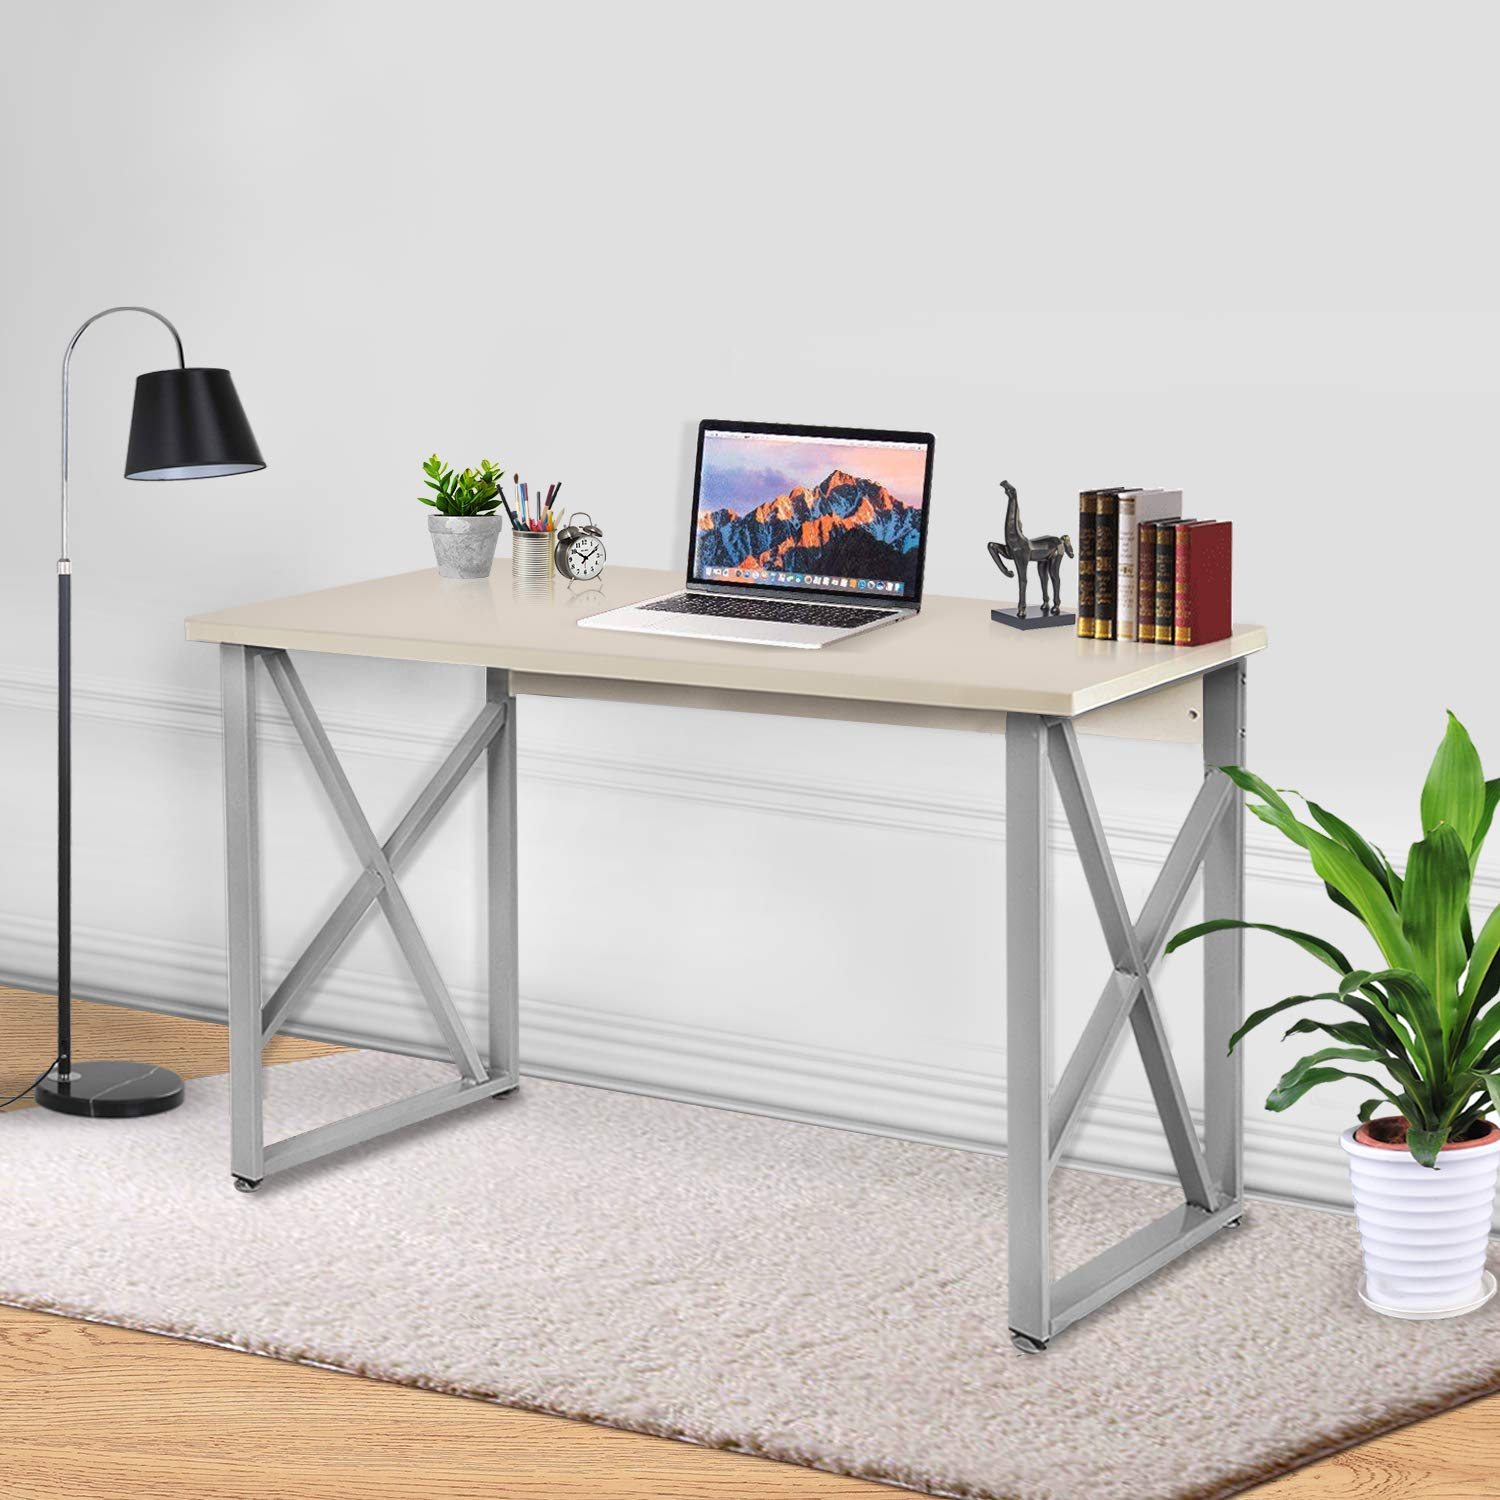 """Office Computer Desk, 47"""" Modern Simple Style PC Laptop Table Office Desk Workstation for home office,Writing Home Office Furniture, Wooden Particleboard Table -White"""